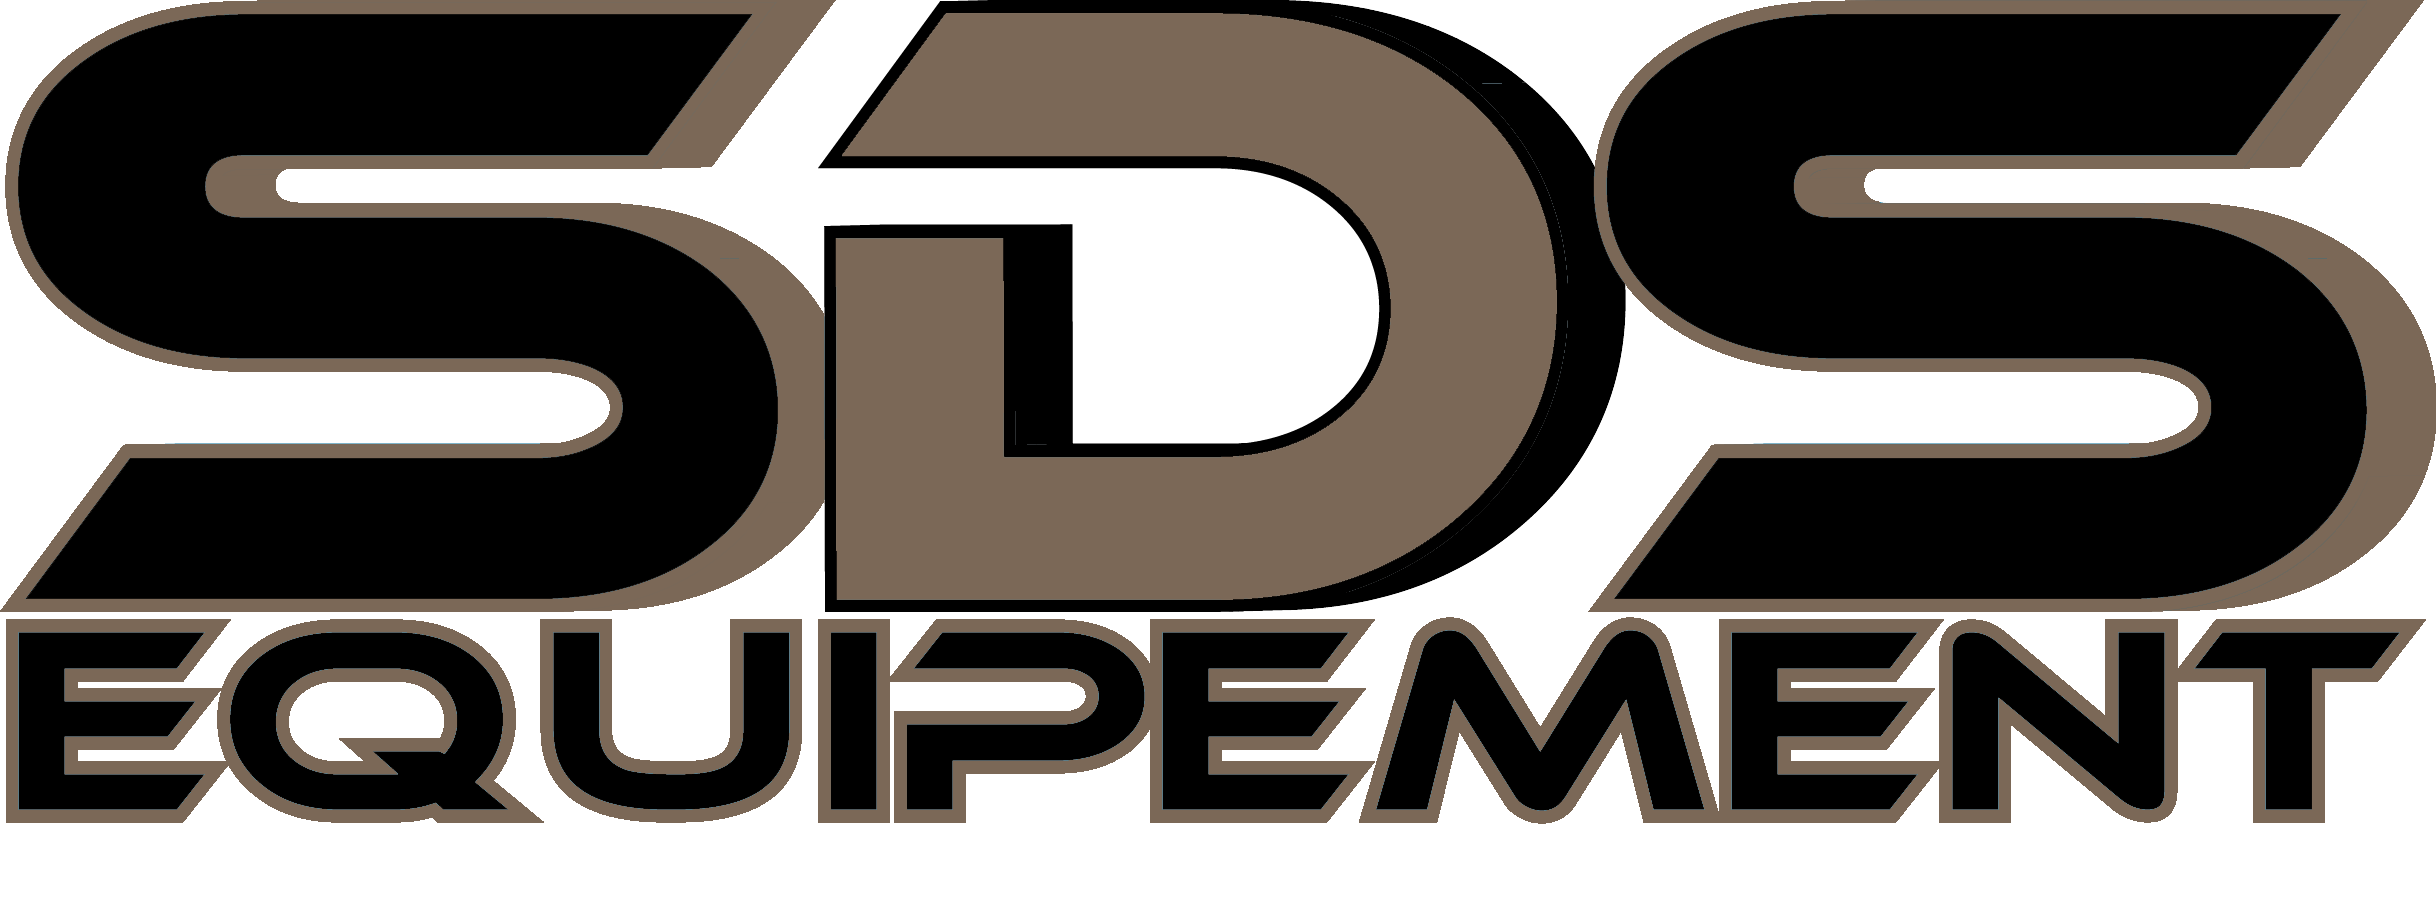 logo-sdsequipement - copie